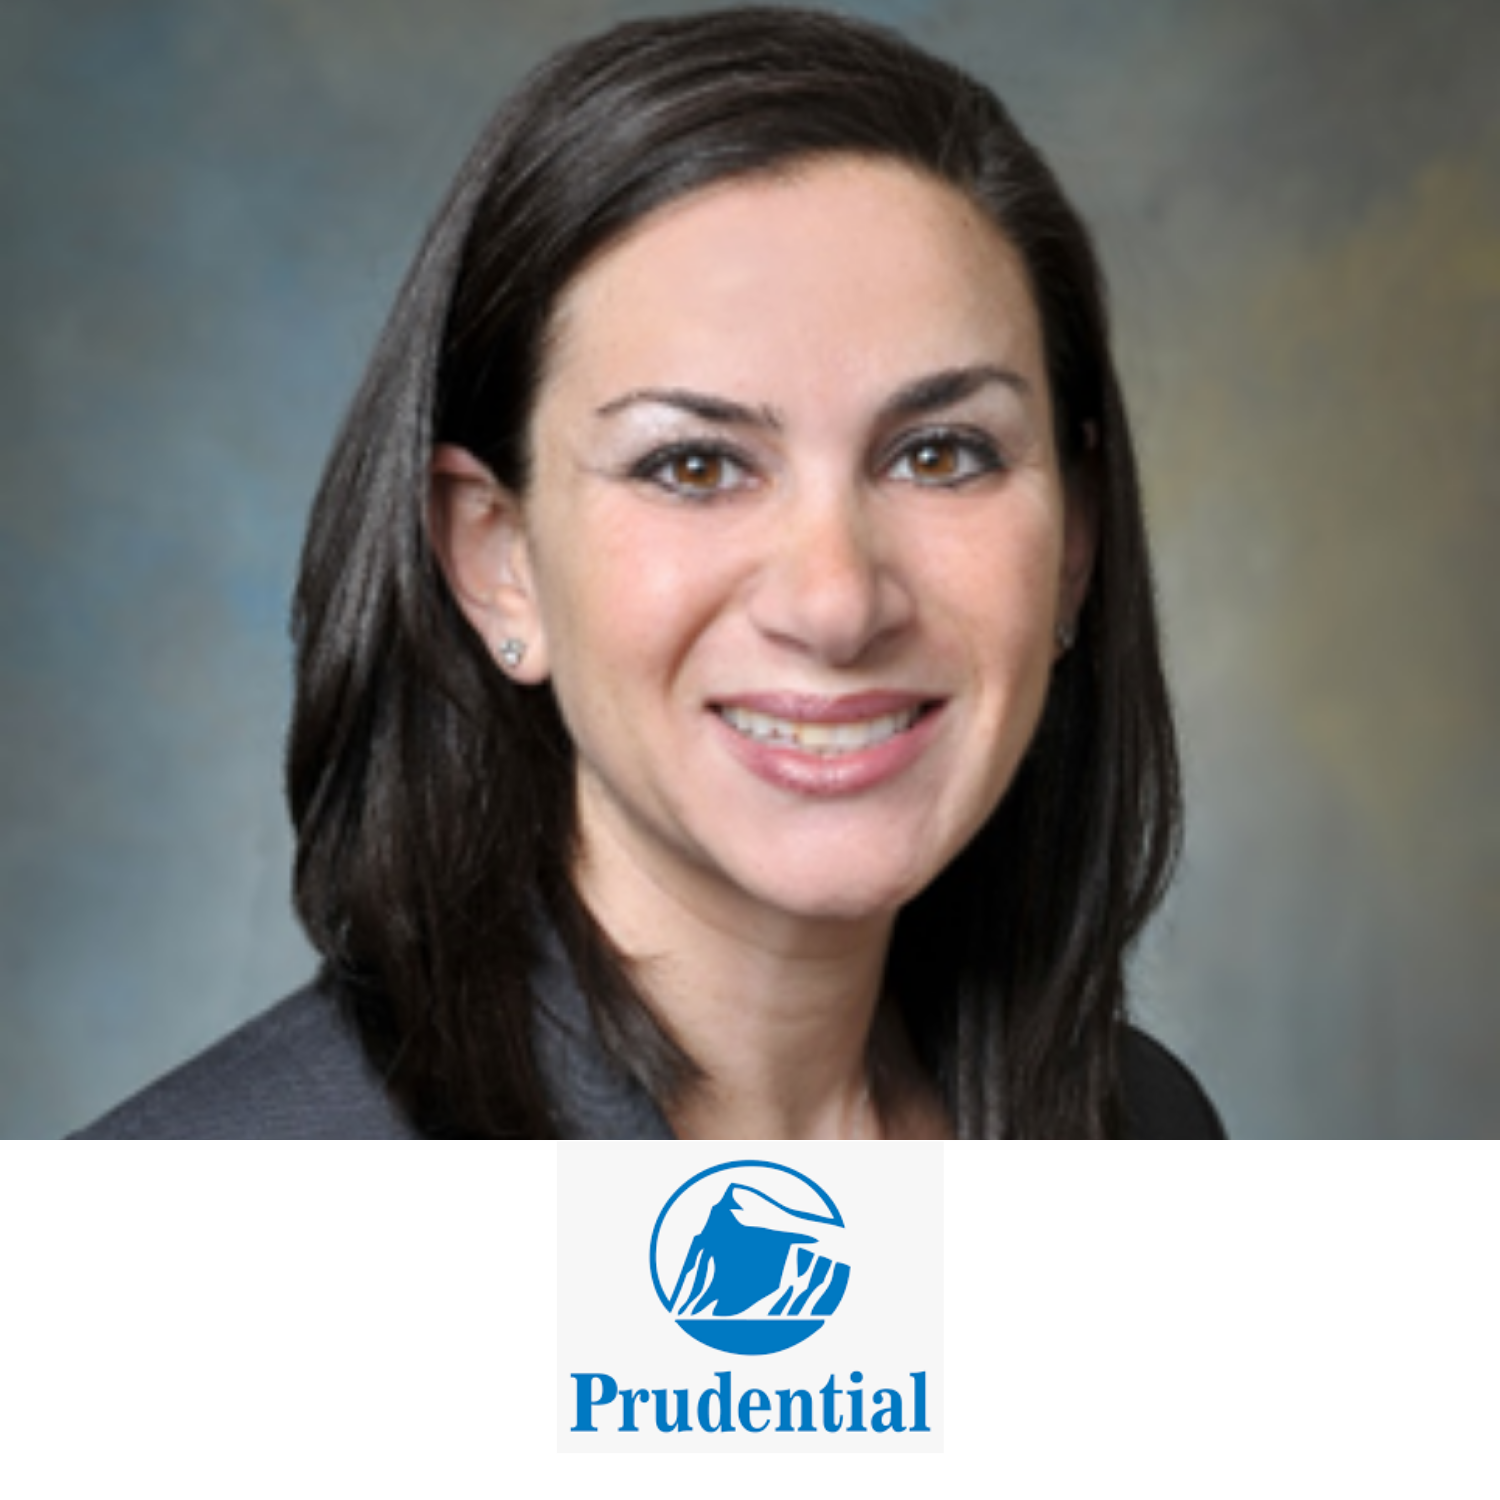 Allison Landers, Head of CX Consulting | CX Center of Excellence, Prudential